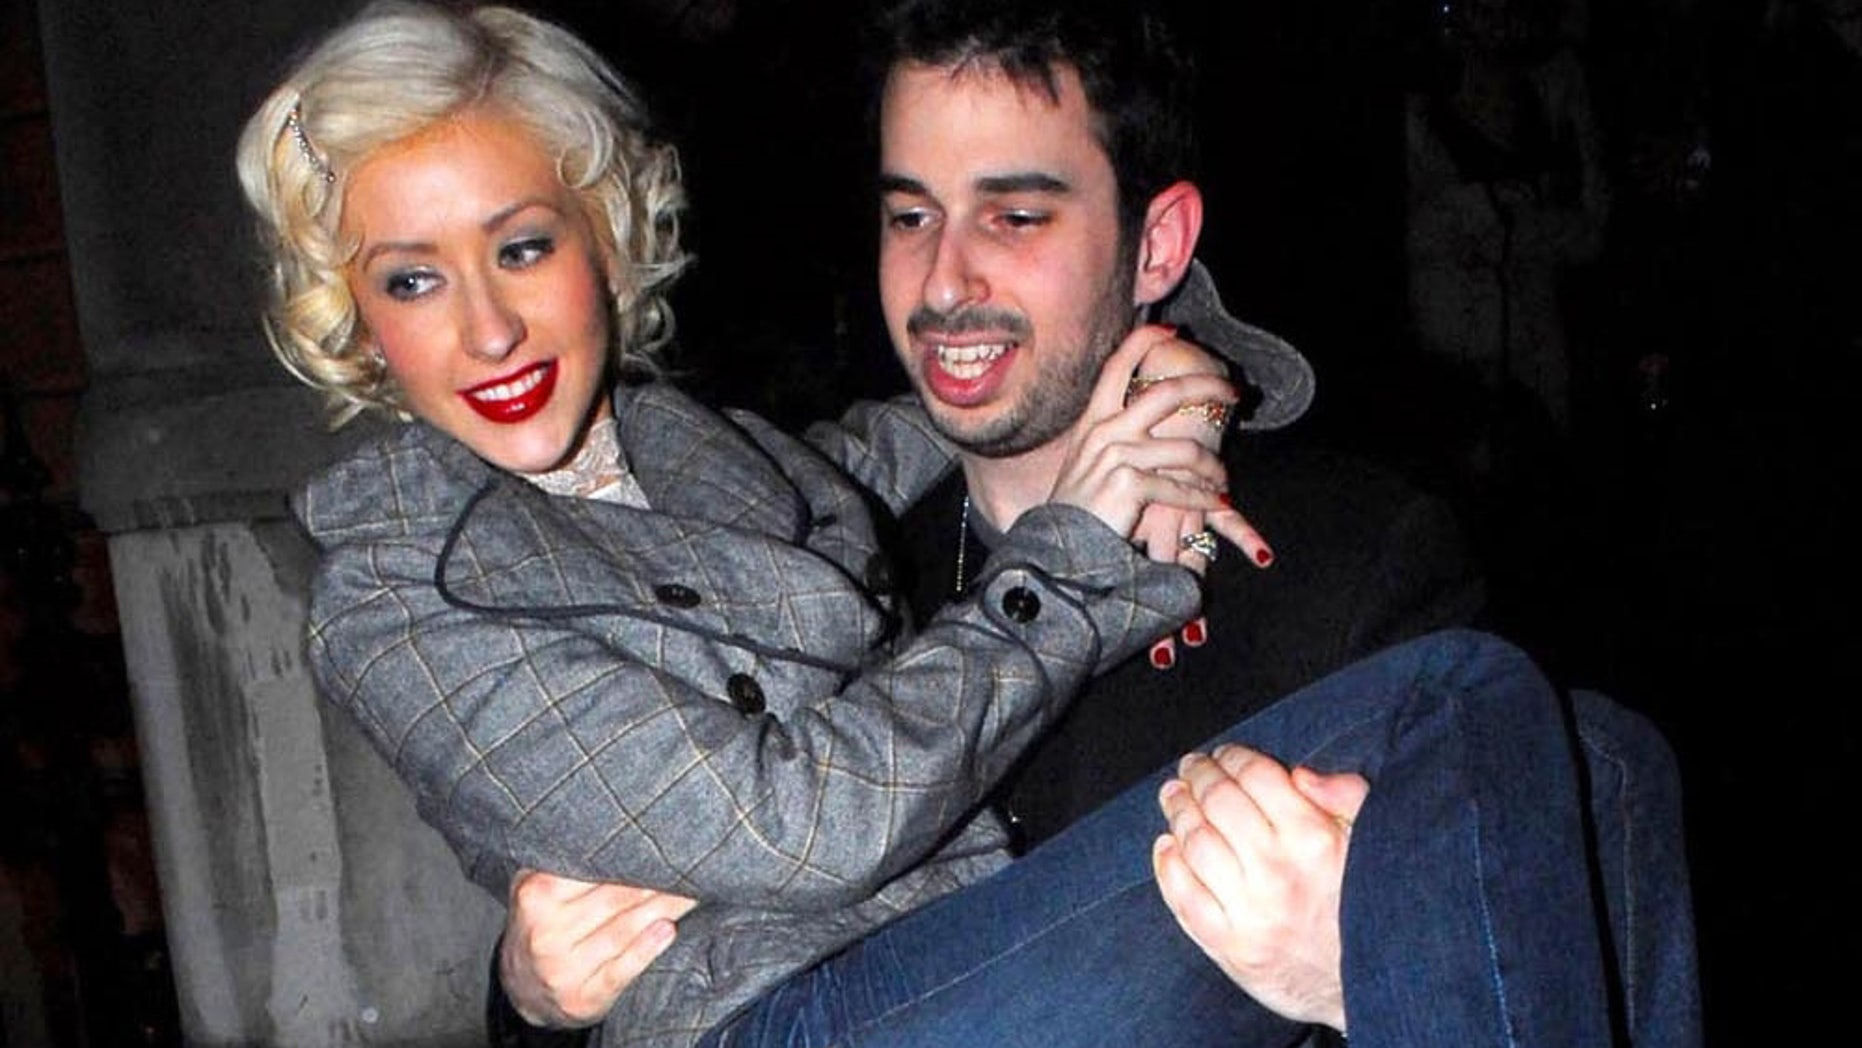 Photo © 2006 The Grosby Group -London, Mar 07 2006Pop super star Christina Aguilera, who is currently in London recording her new album, leaves her exclusive London hotel with hubby Jordan Bratman , and they head off to the meet headquakers in knightsbridge.Christina emerge looking sightly unsteady on her feet!The couple then wentÊonto celeb nightspot boujis, were they partying until the early hours. Jordan had to carry Christina back to the hotel as they go out of the car and she gave him a big kiss to thank him for it, smudging her bright red lipstick over her face!(PR)